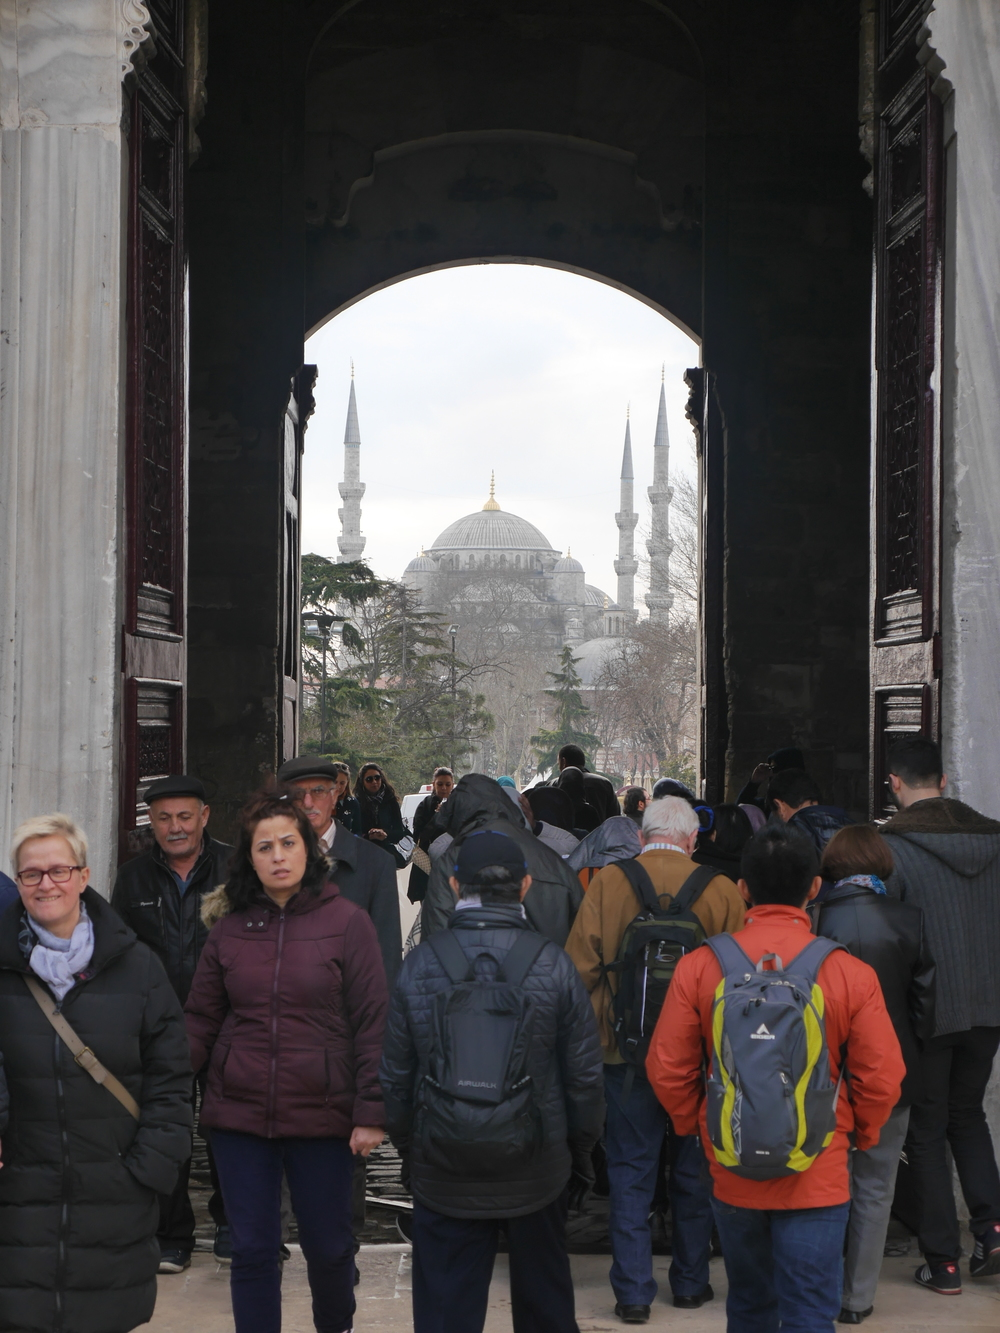 Exiting the palace grounds and heading towards the Blue Mosque.